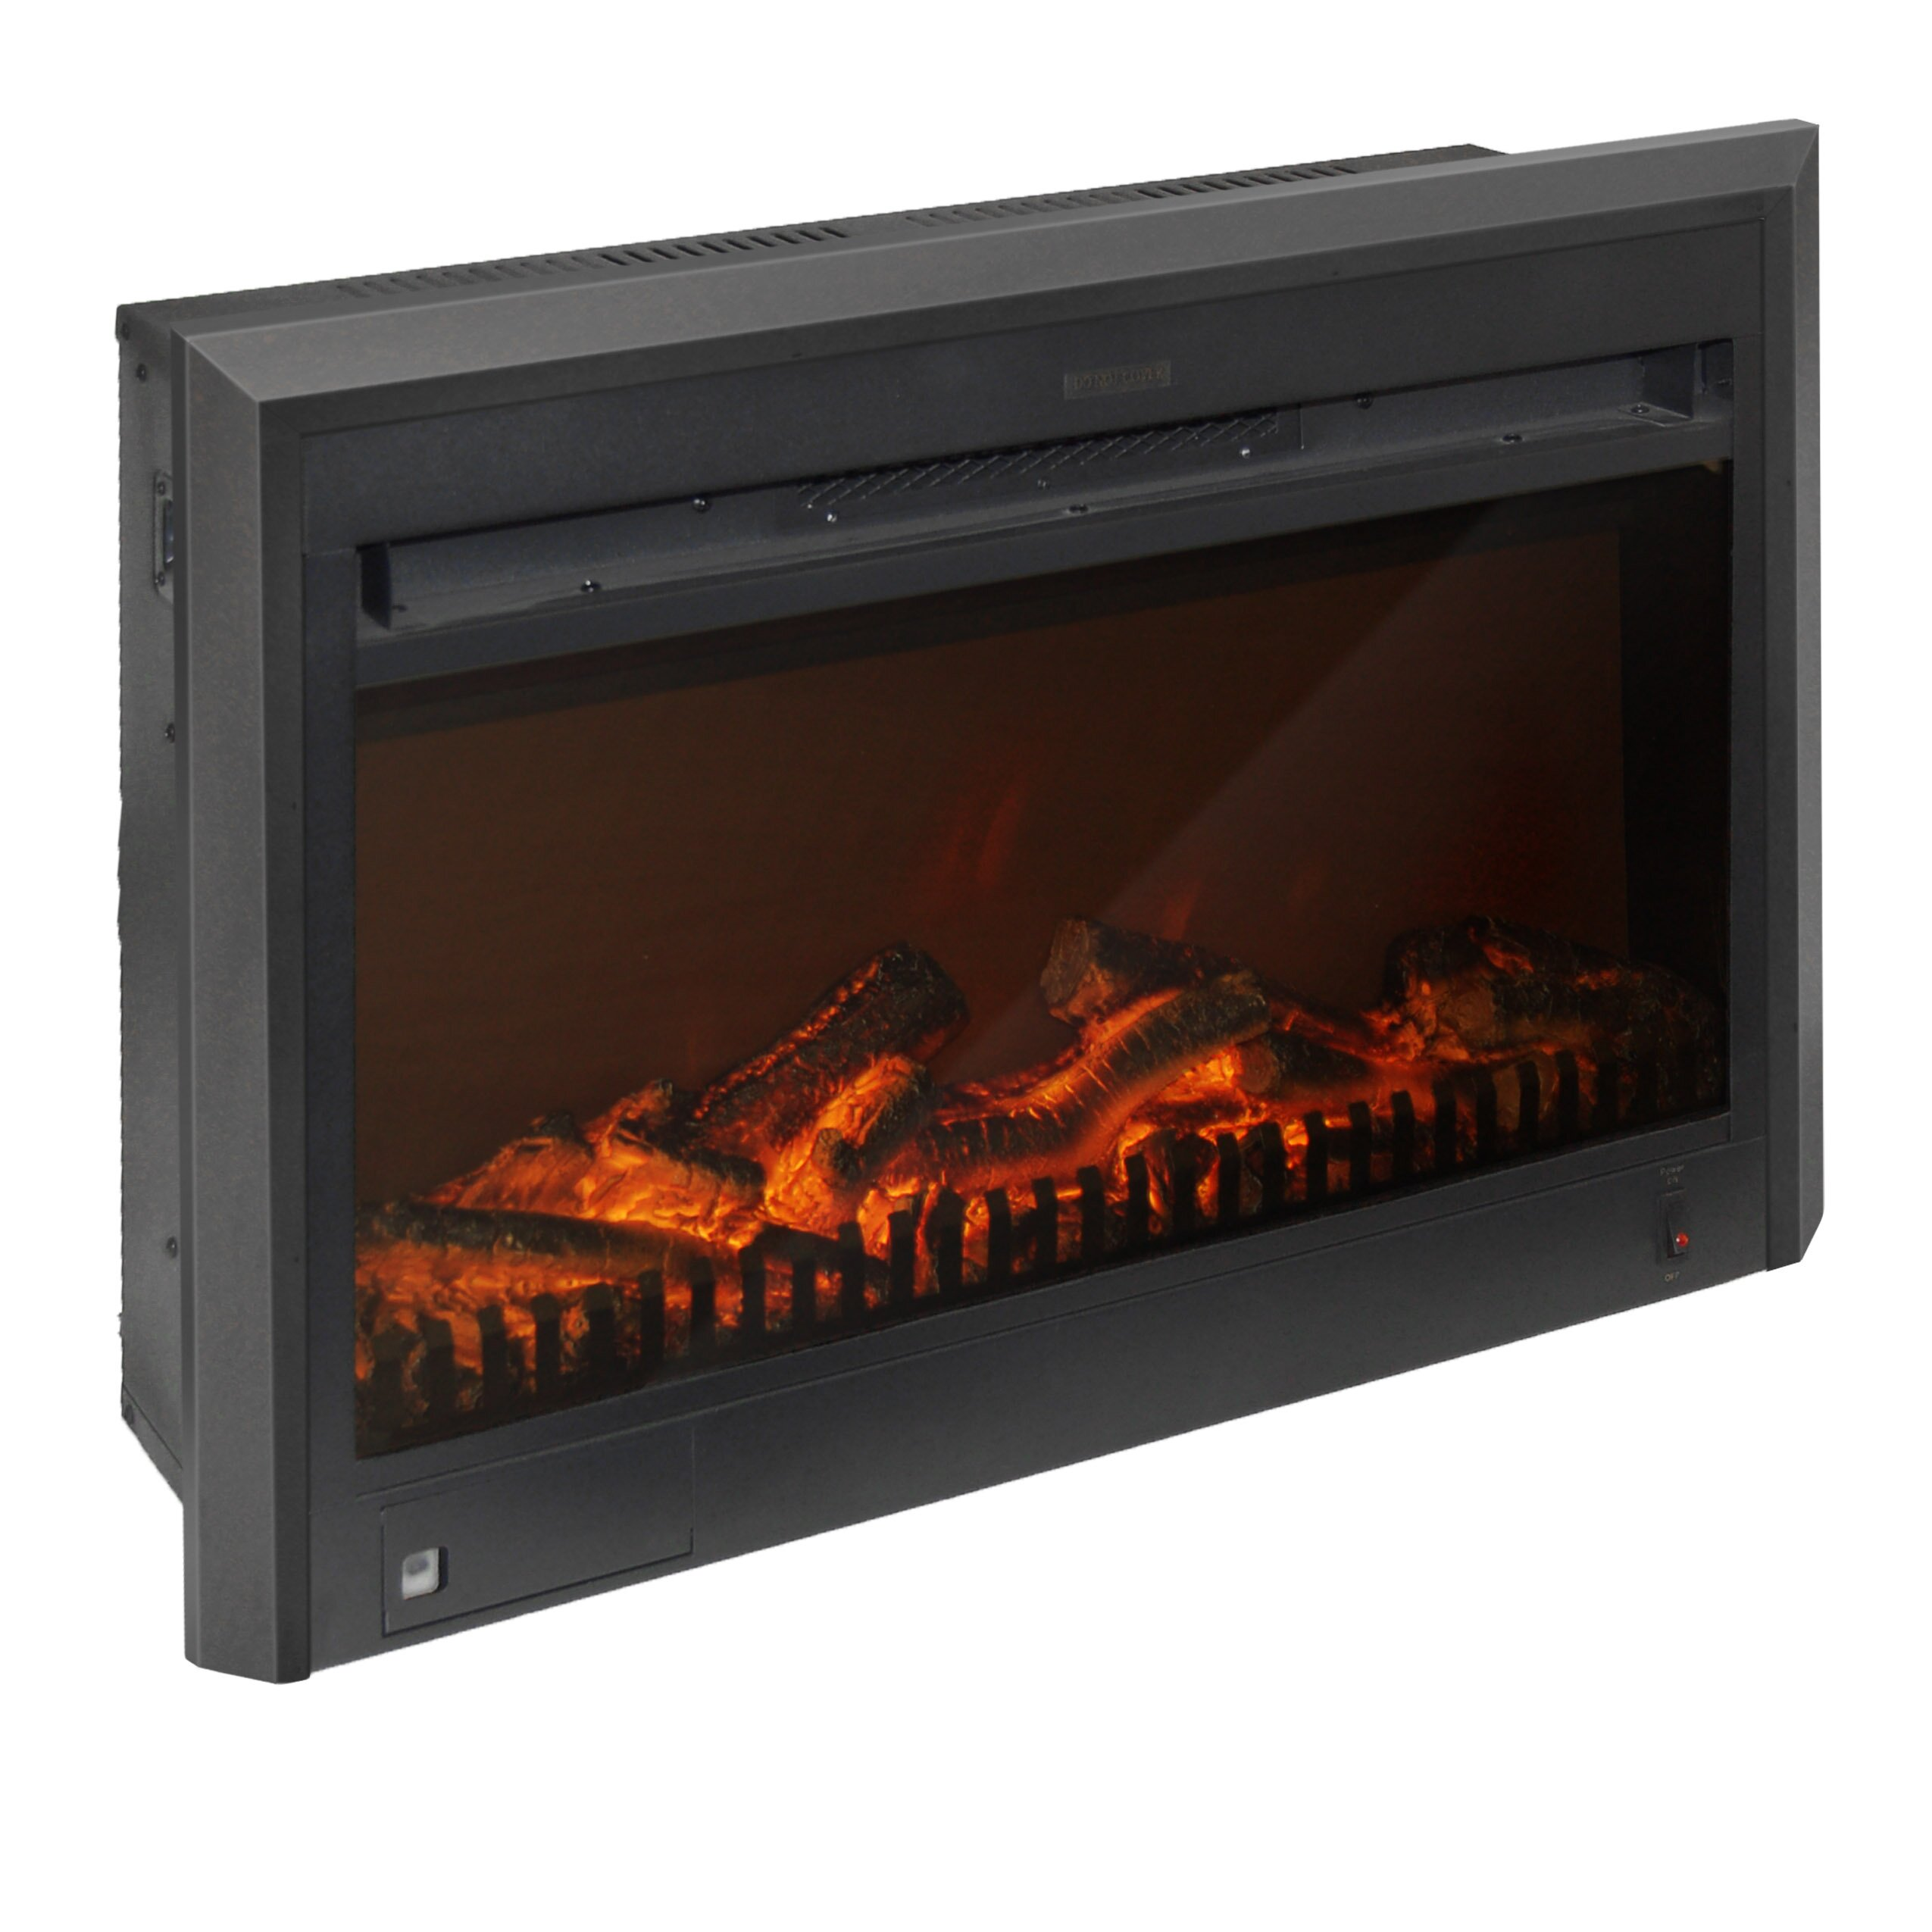 Corliving Electric Fireplace Insert Amp Reviews Wayfair